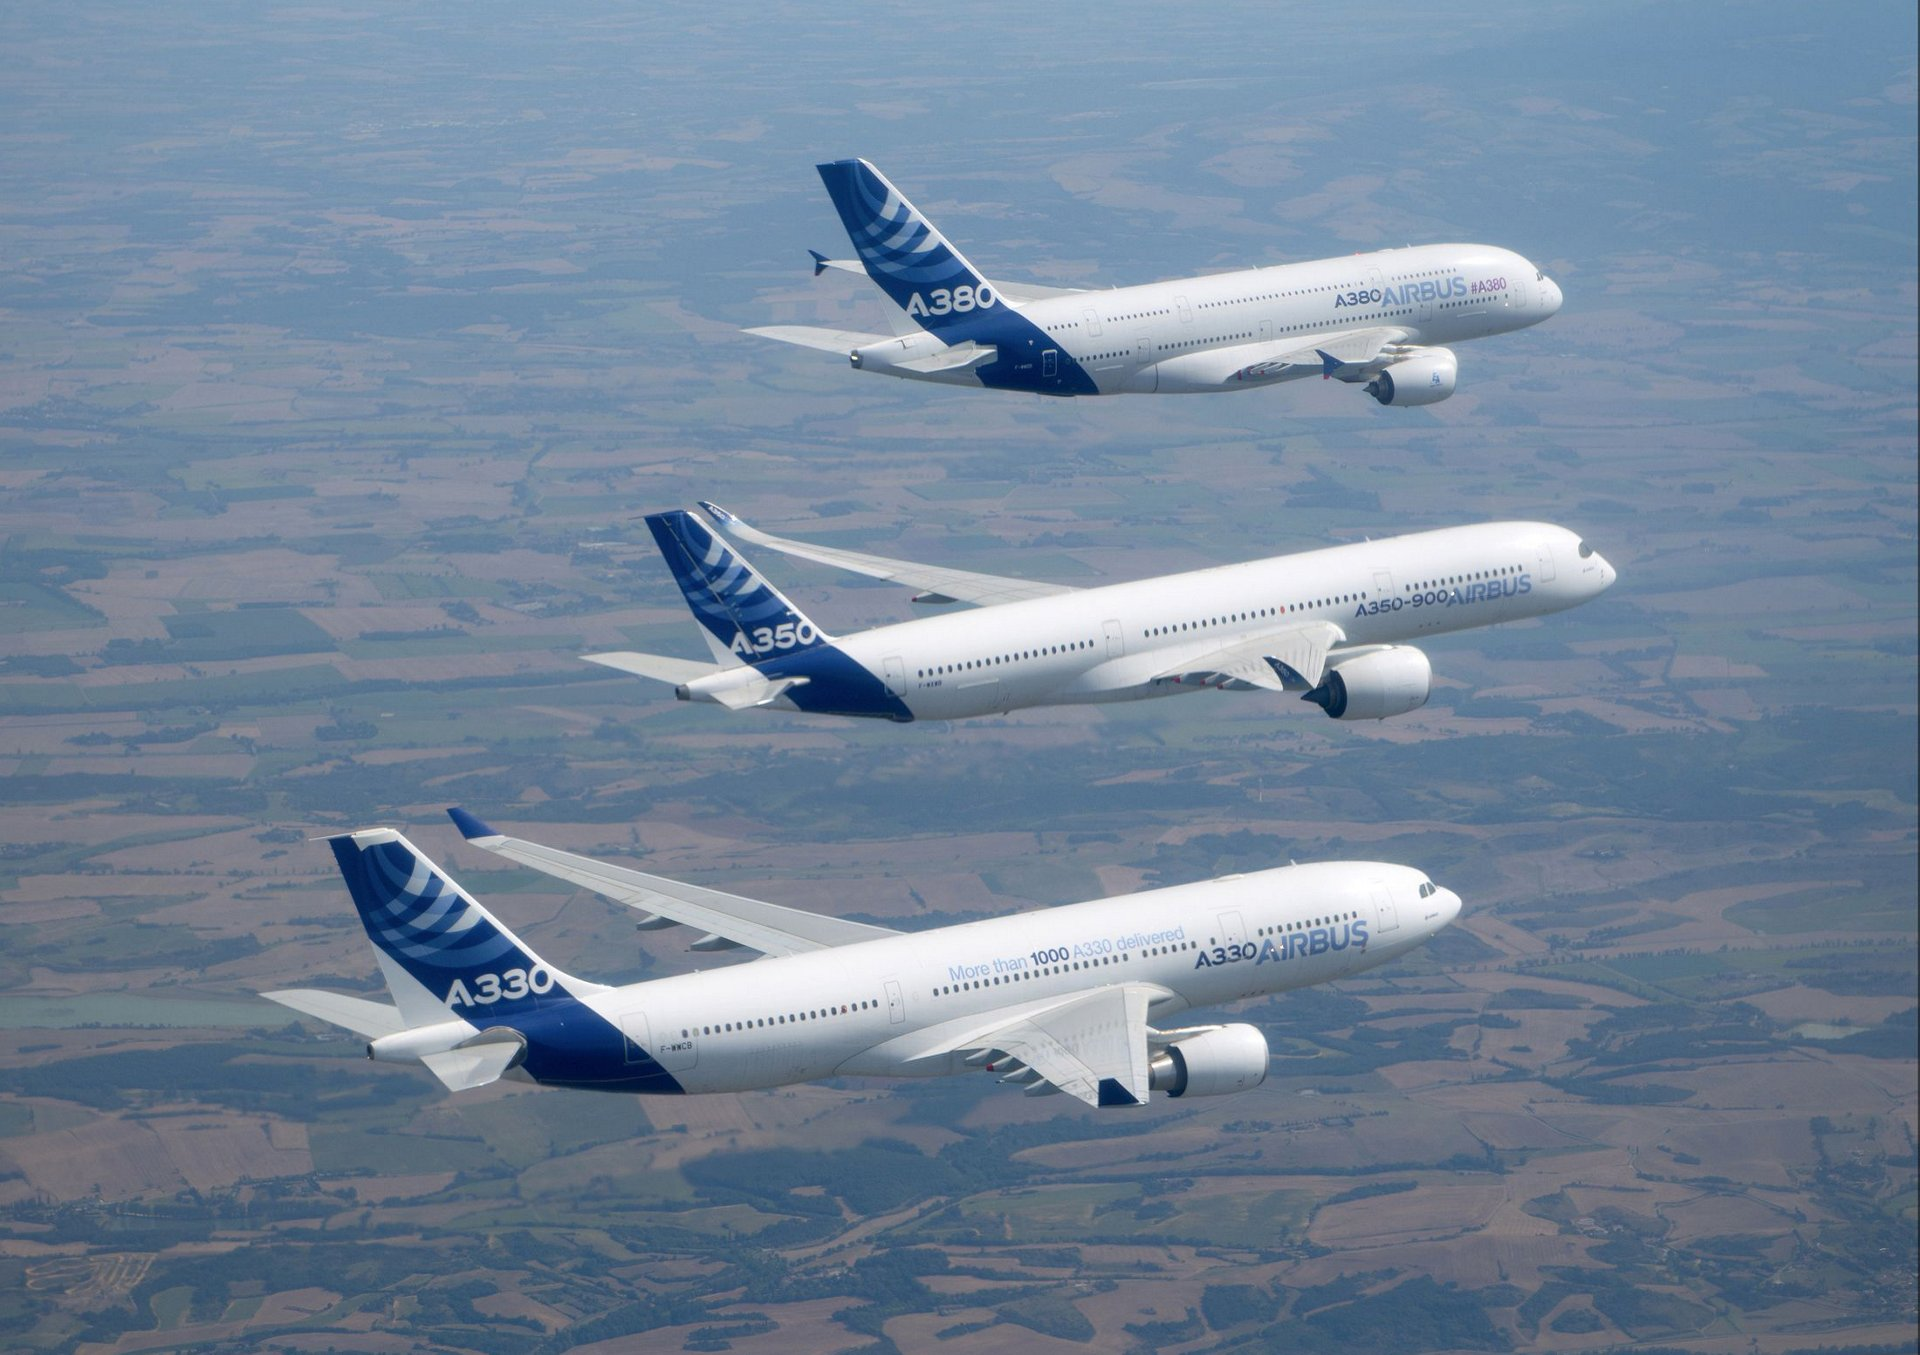 Airbus widebody family flight